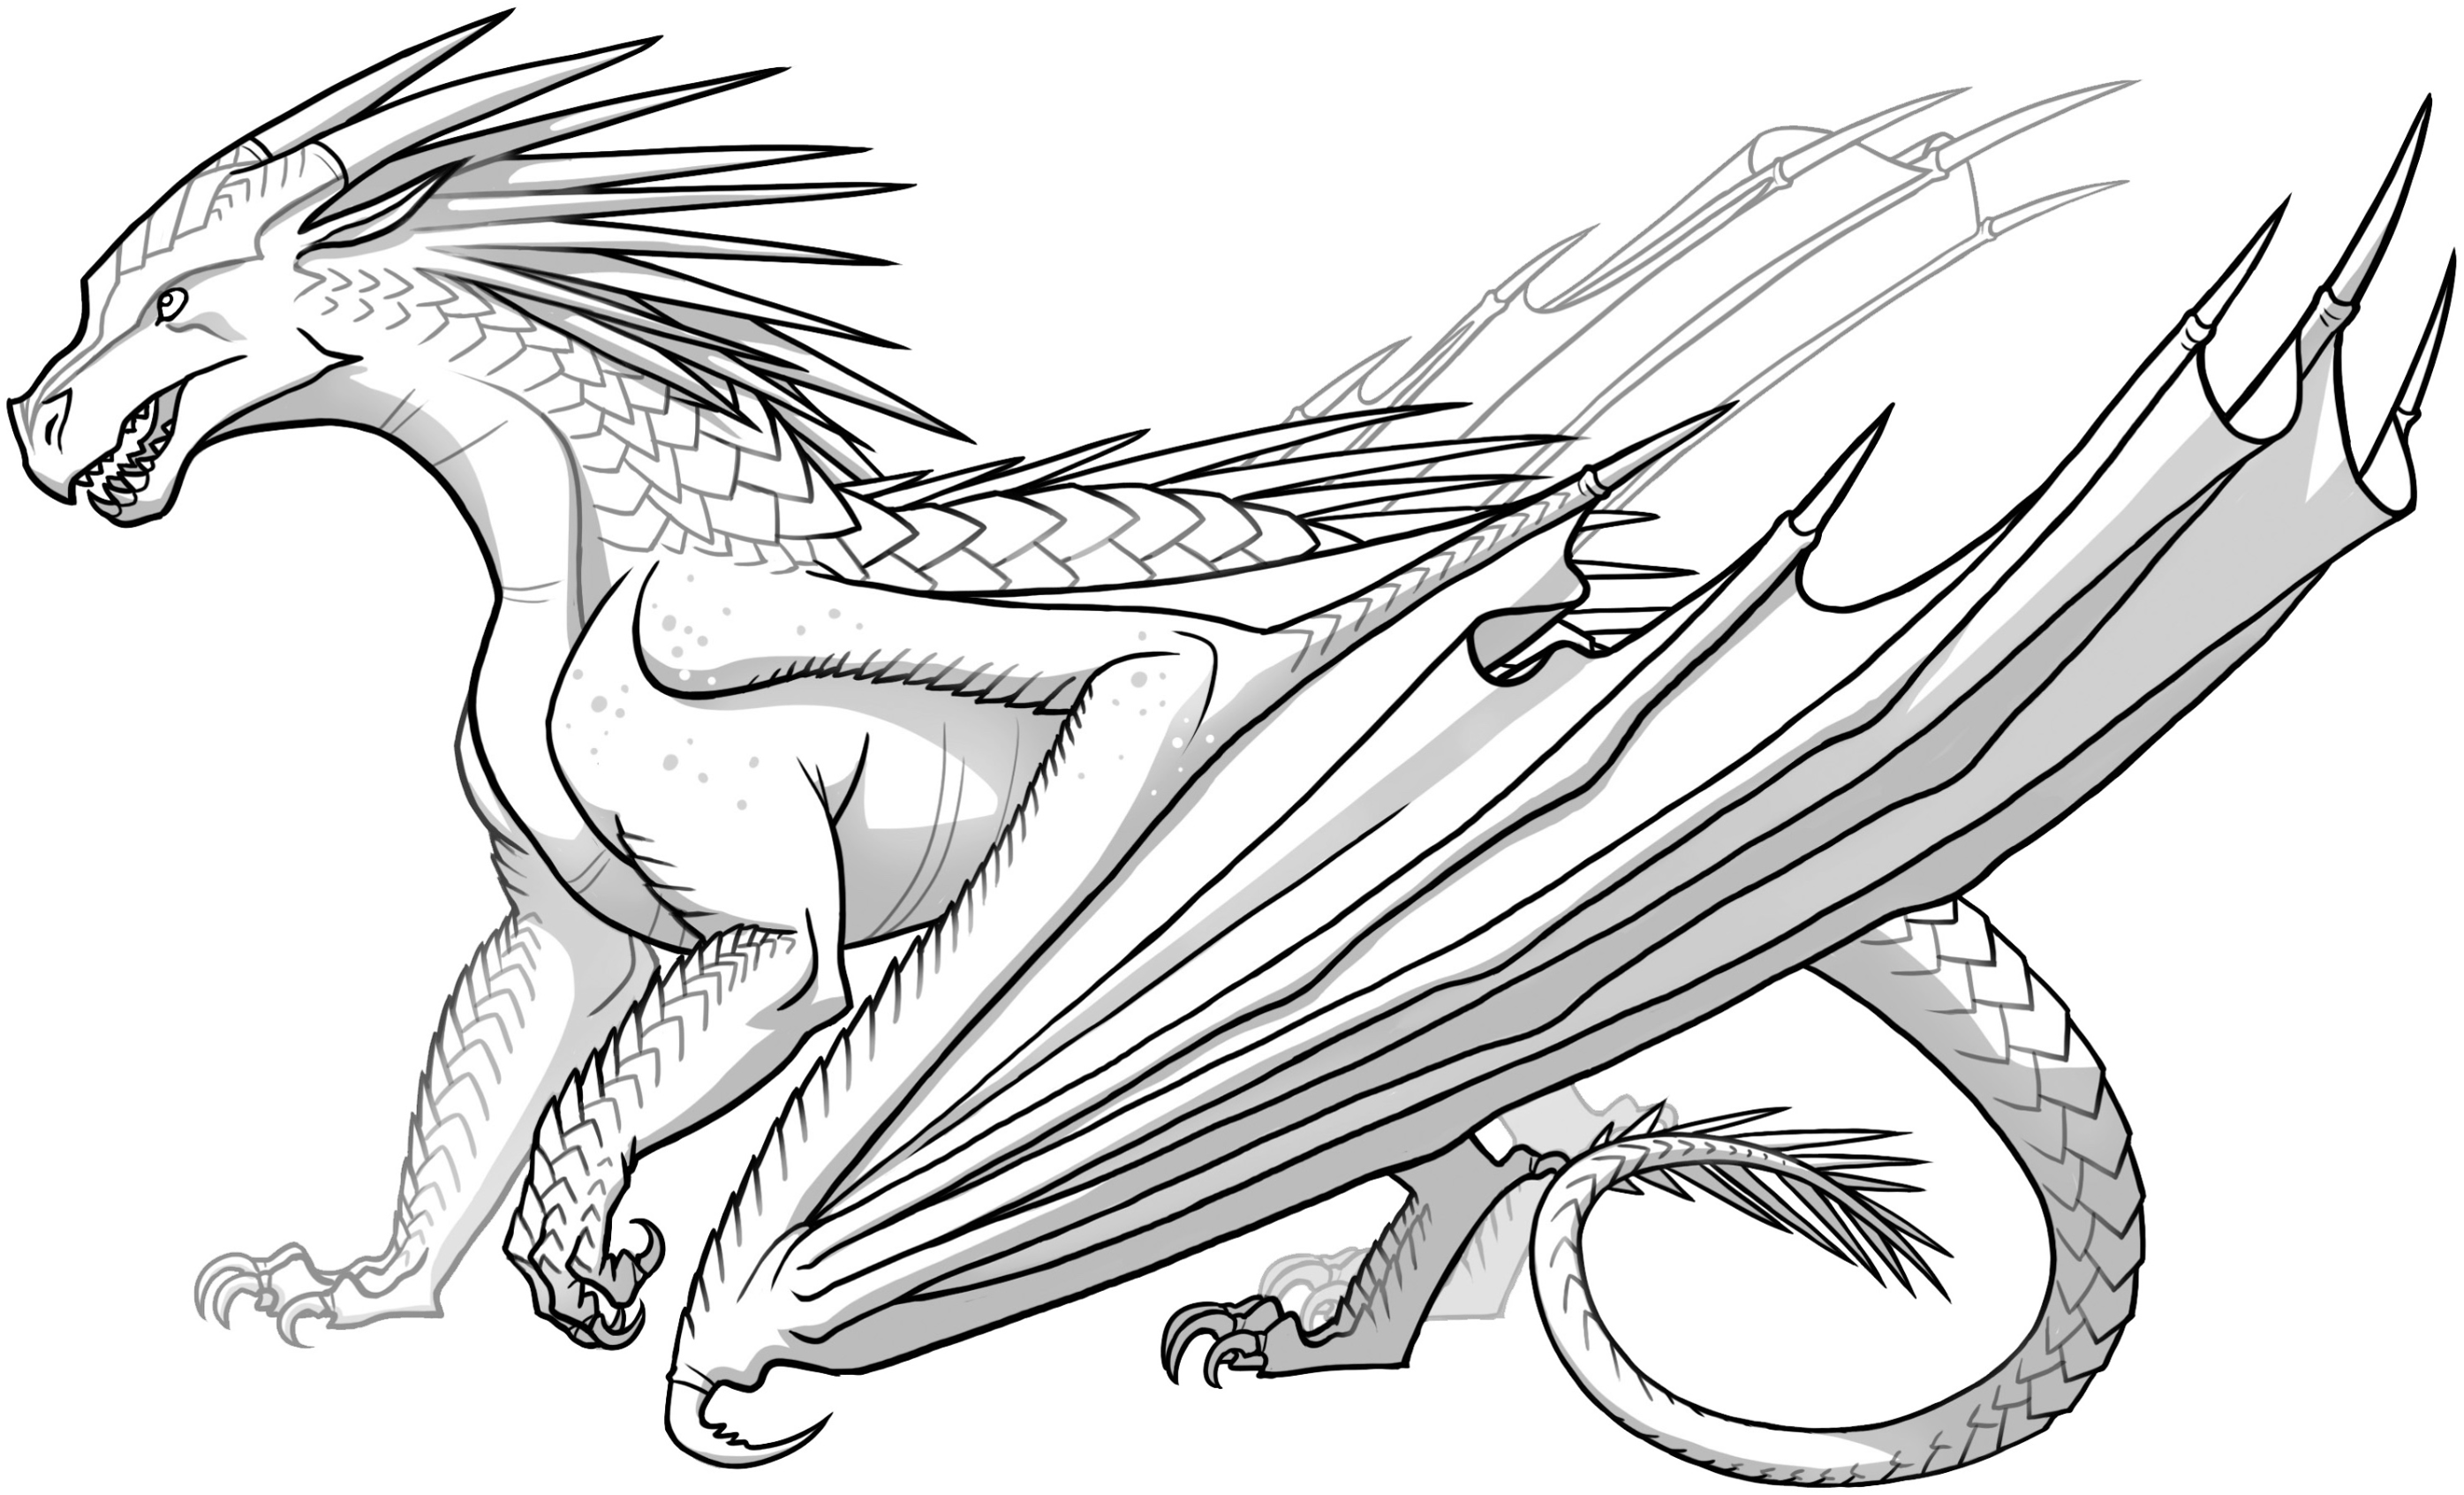 Icewings wings of fire wiki fandom powered by wikia ccuart Choice Image